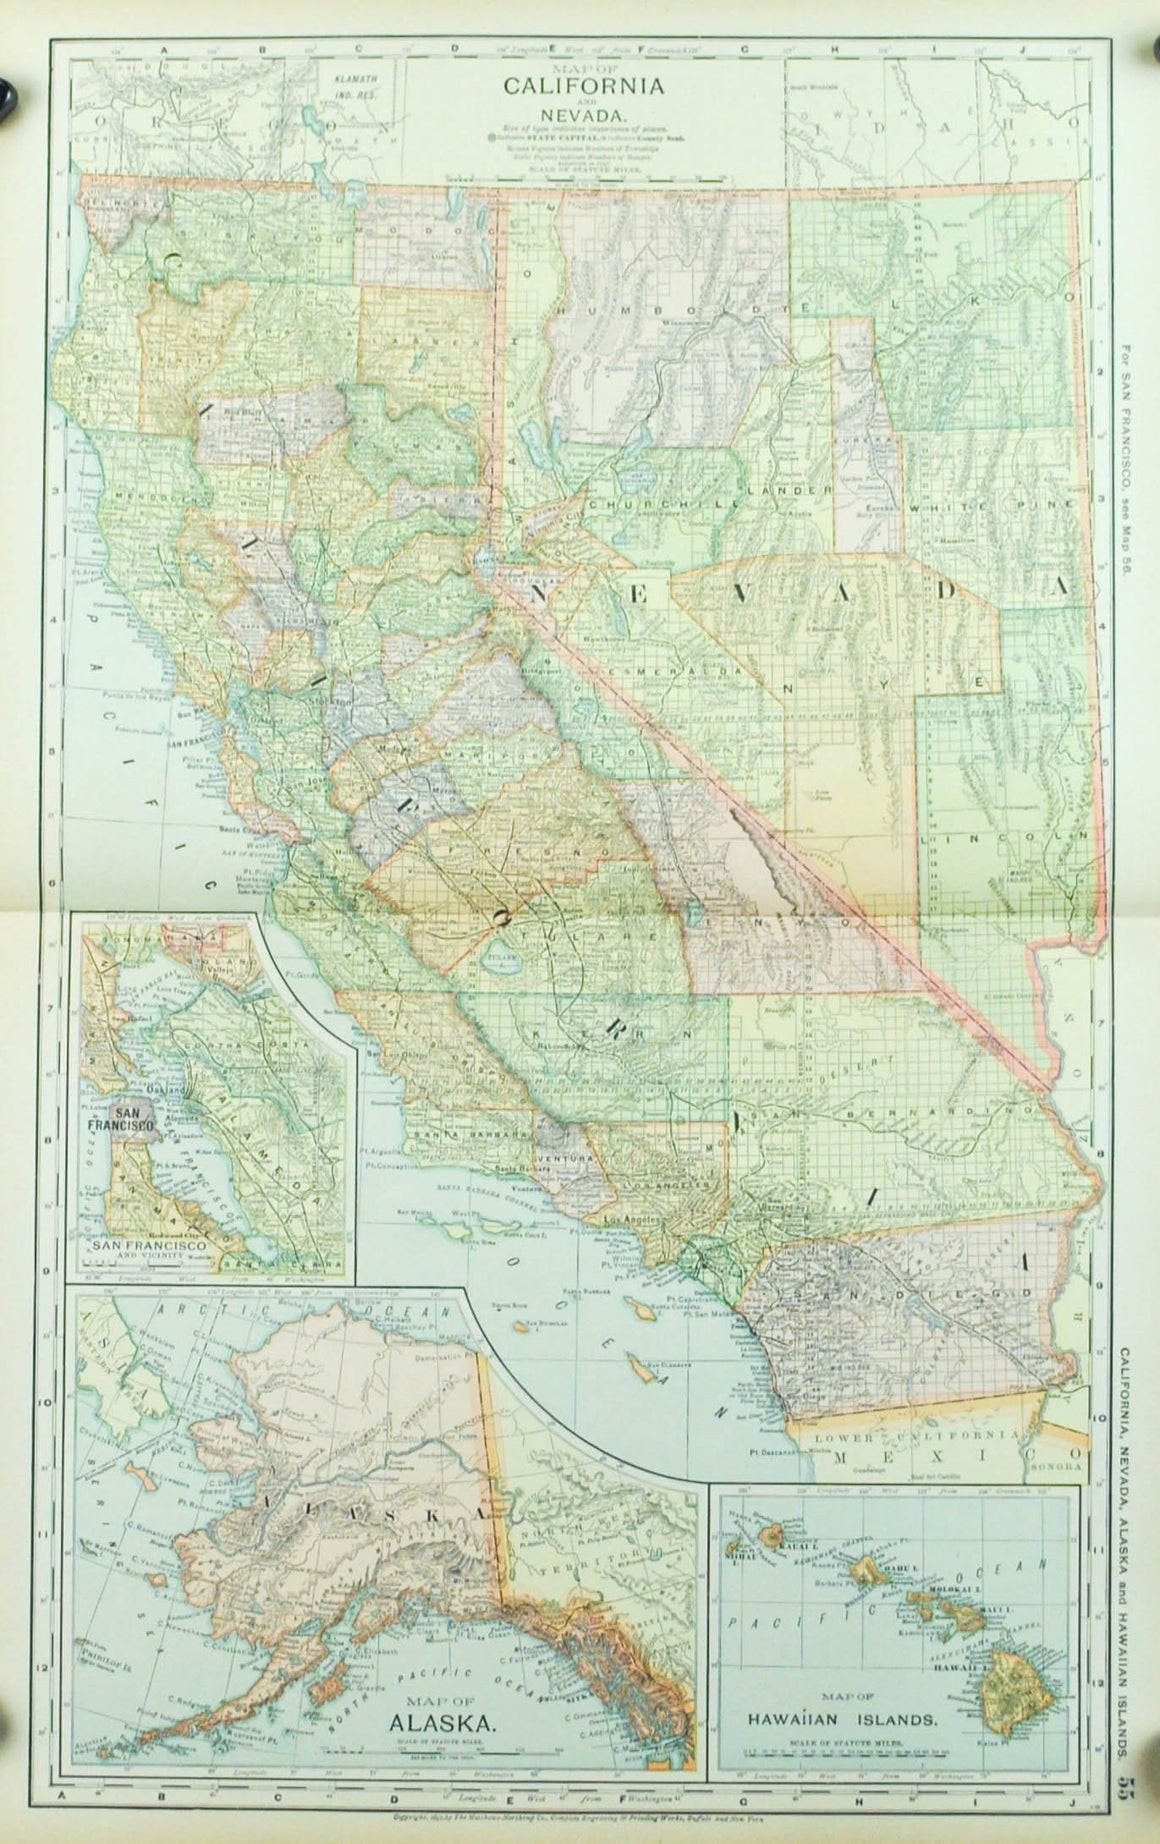 1891 Map of Calfornia and Nevada